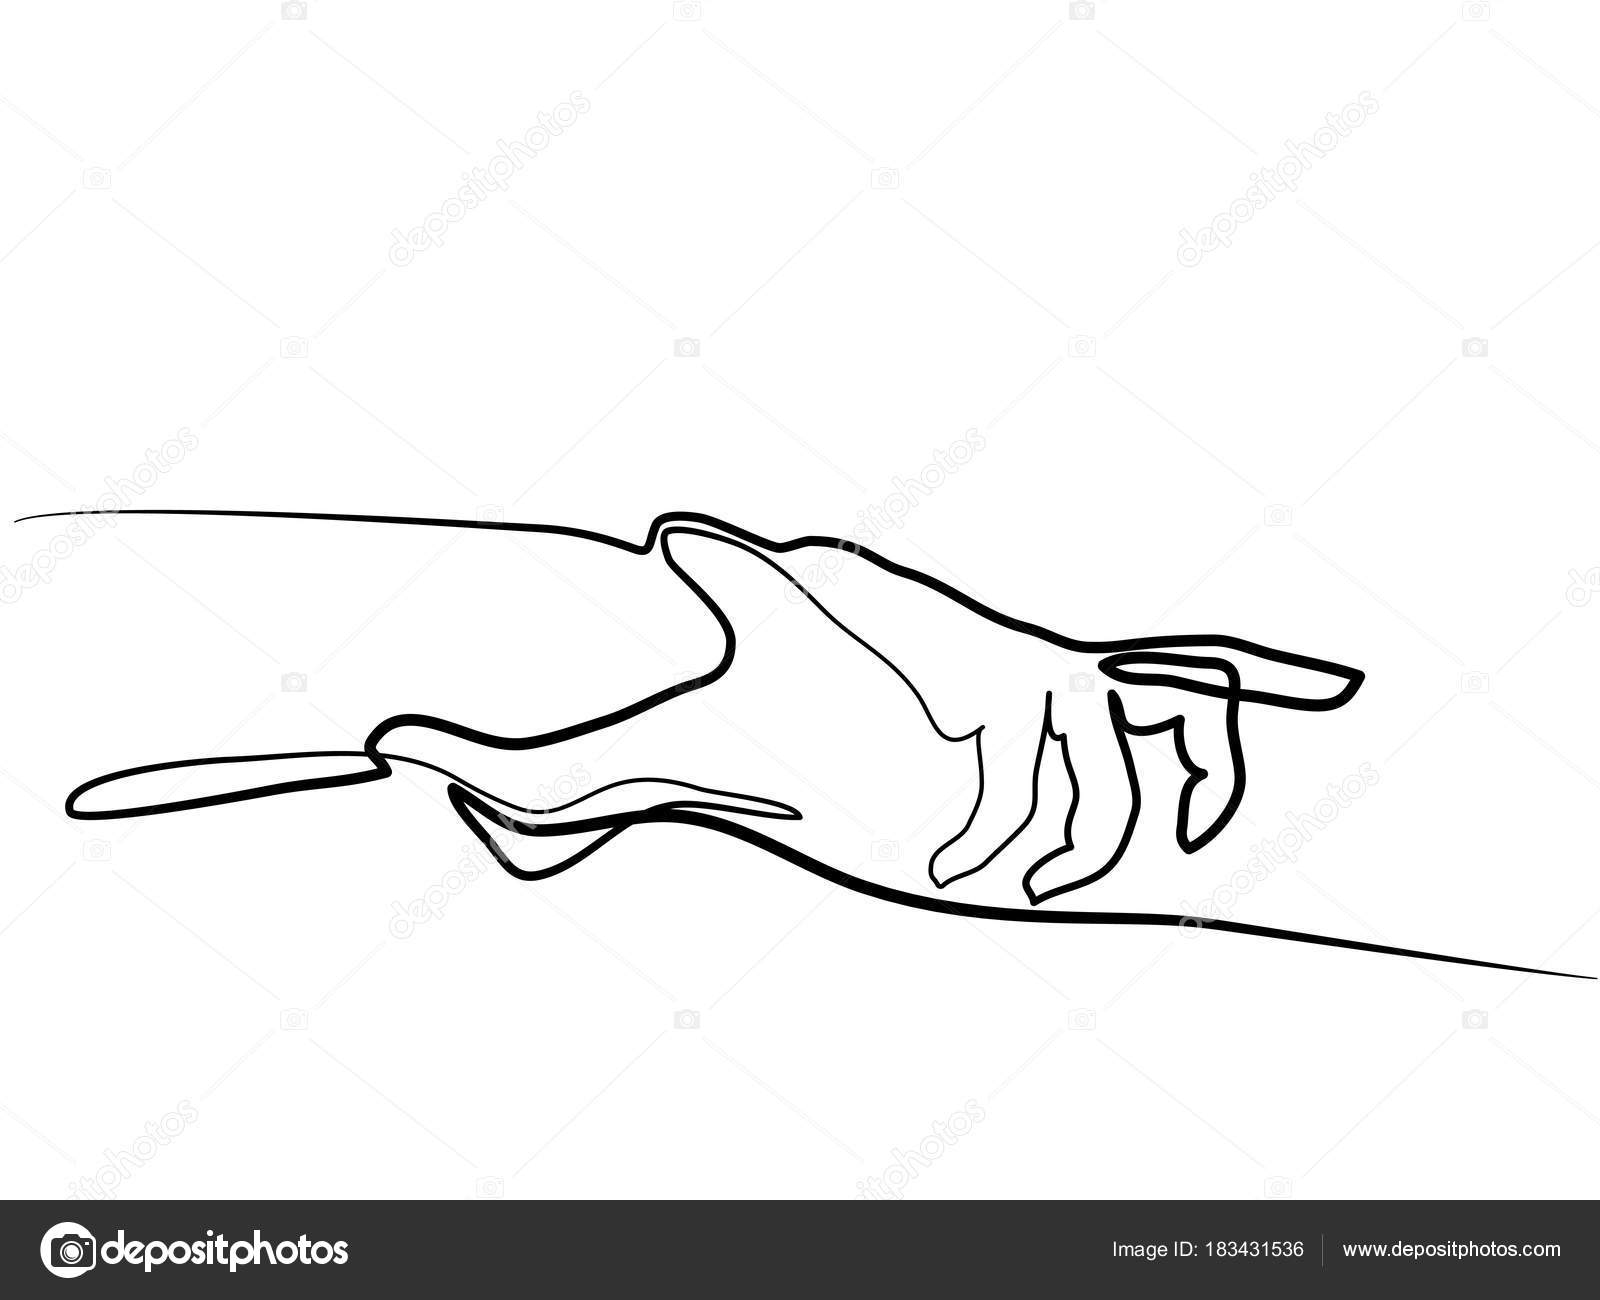 Line Art Hands : Continuous line drawing of holding hands together — stock